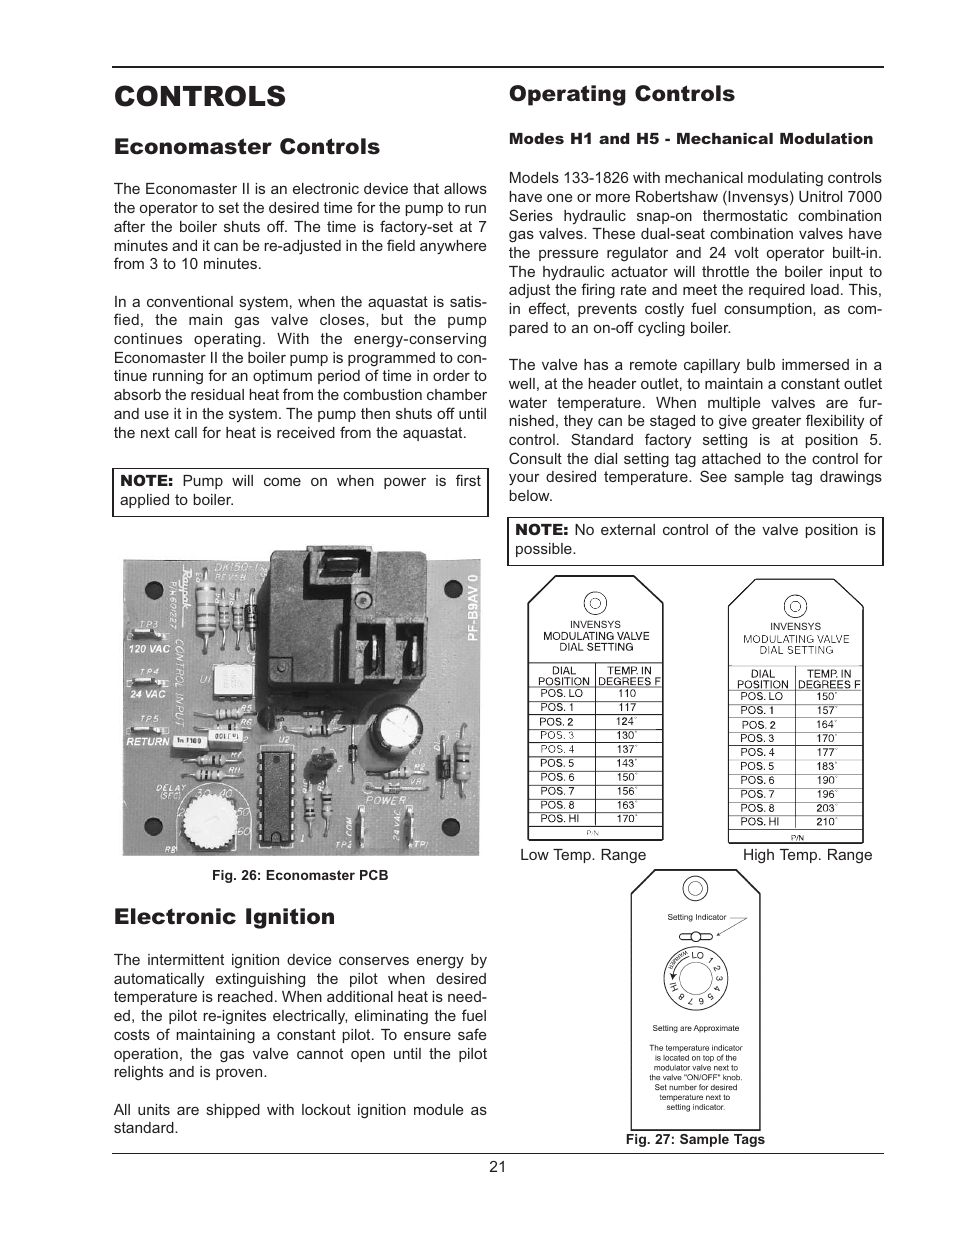 controls, economaster controls, electronic ignition | raypak raytherm  133-4001 user manual | page 21 / 44